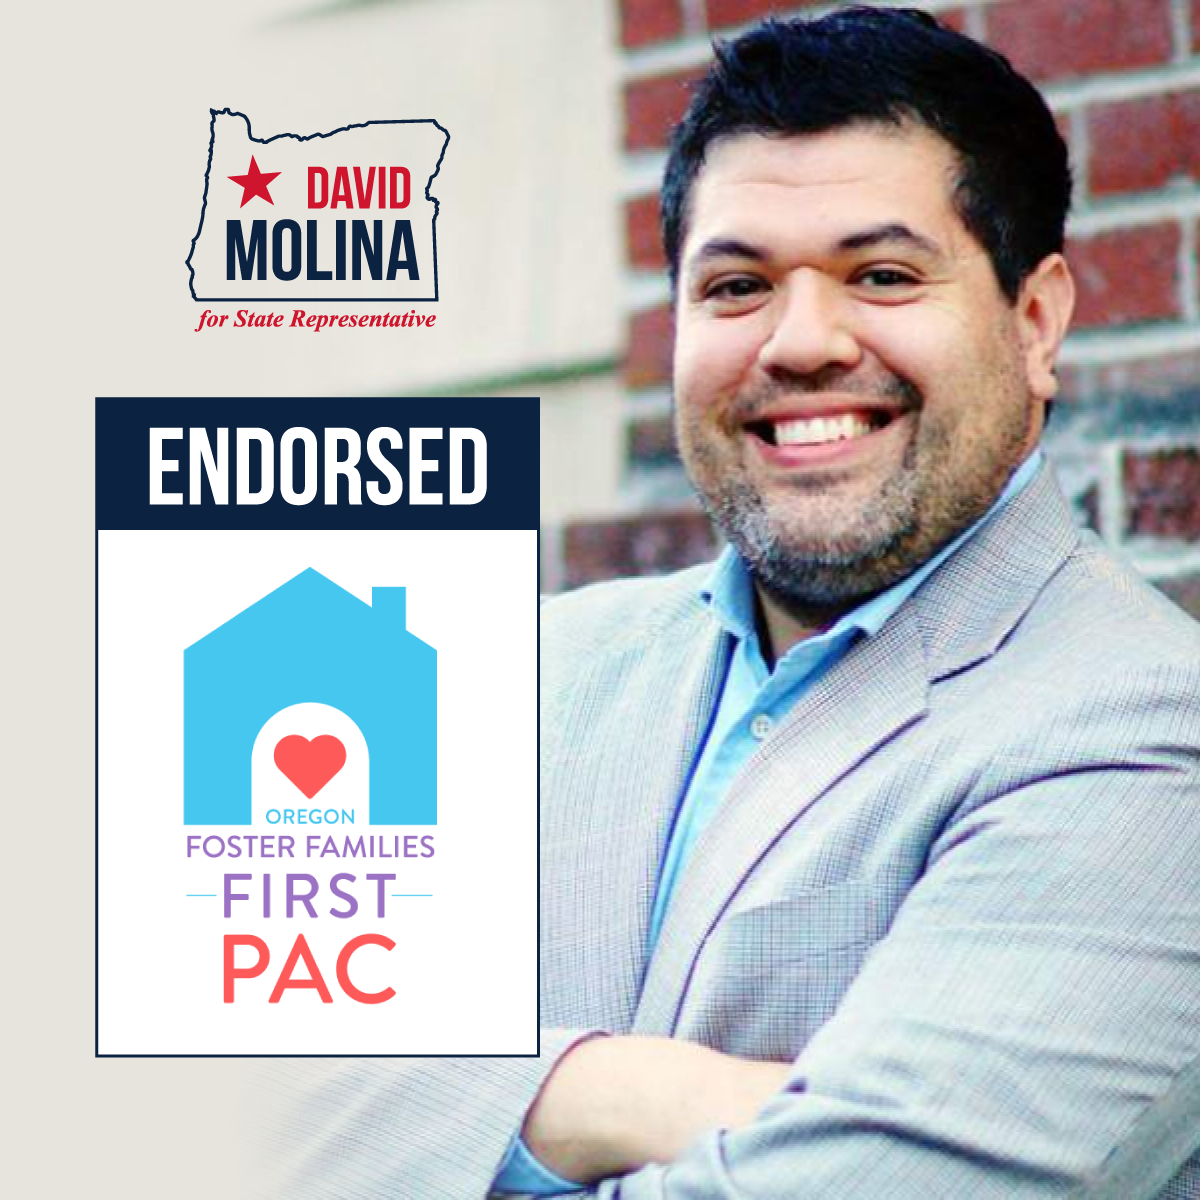 Leading advocates and champions for 11,000 of Oregon's most vulnerable foster children get behind David Molina for state representative